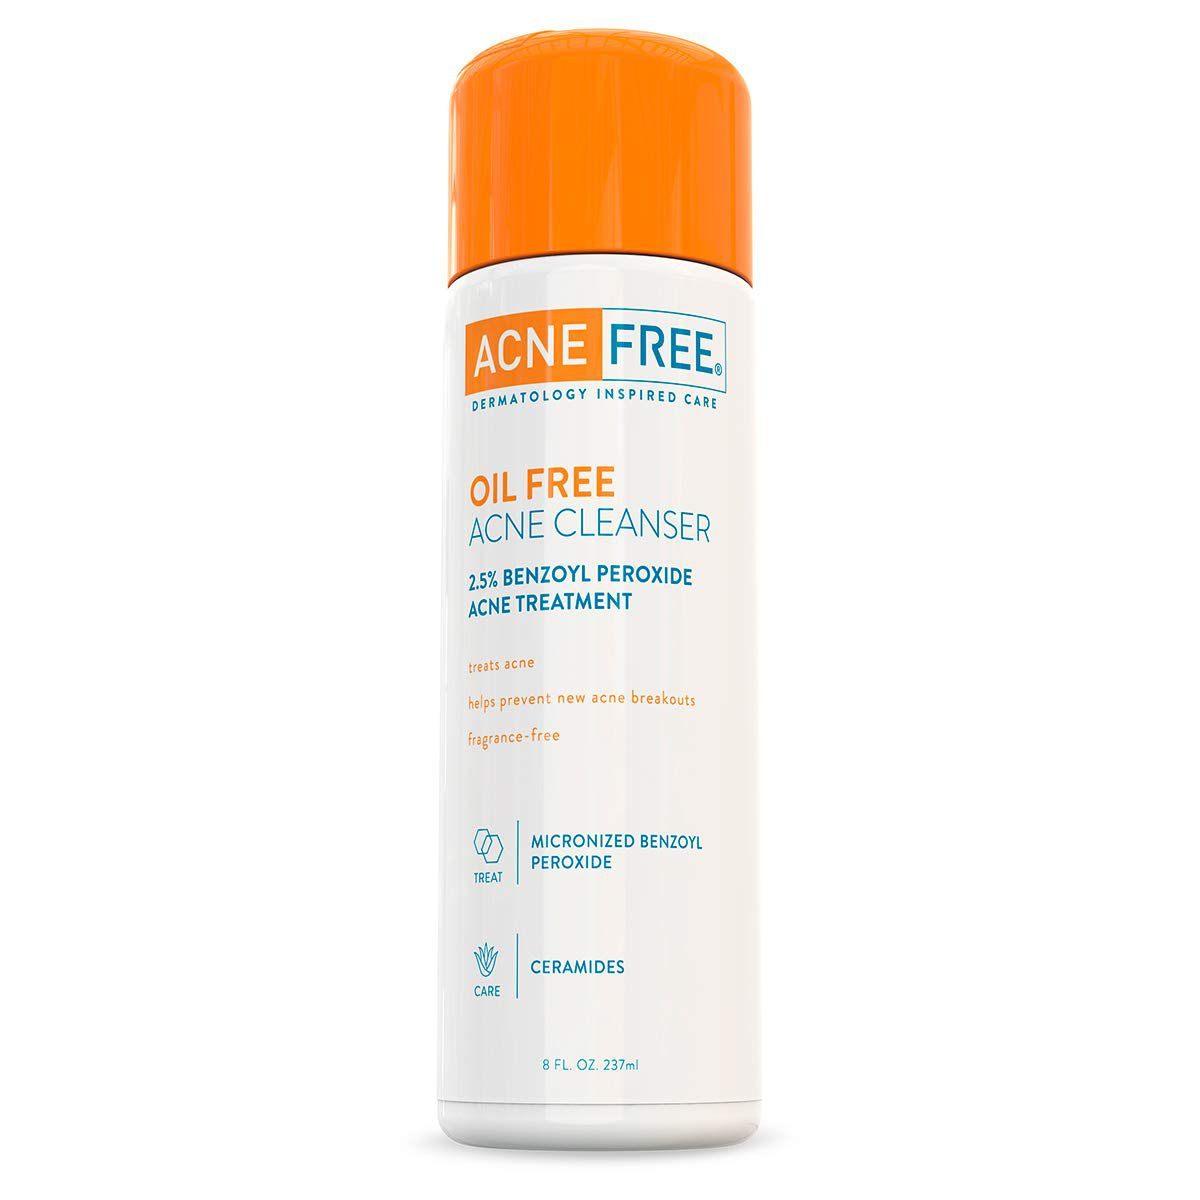 acnefree oil free acne cleanser